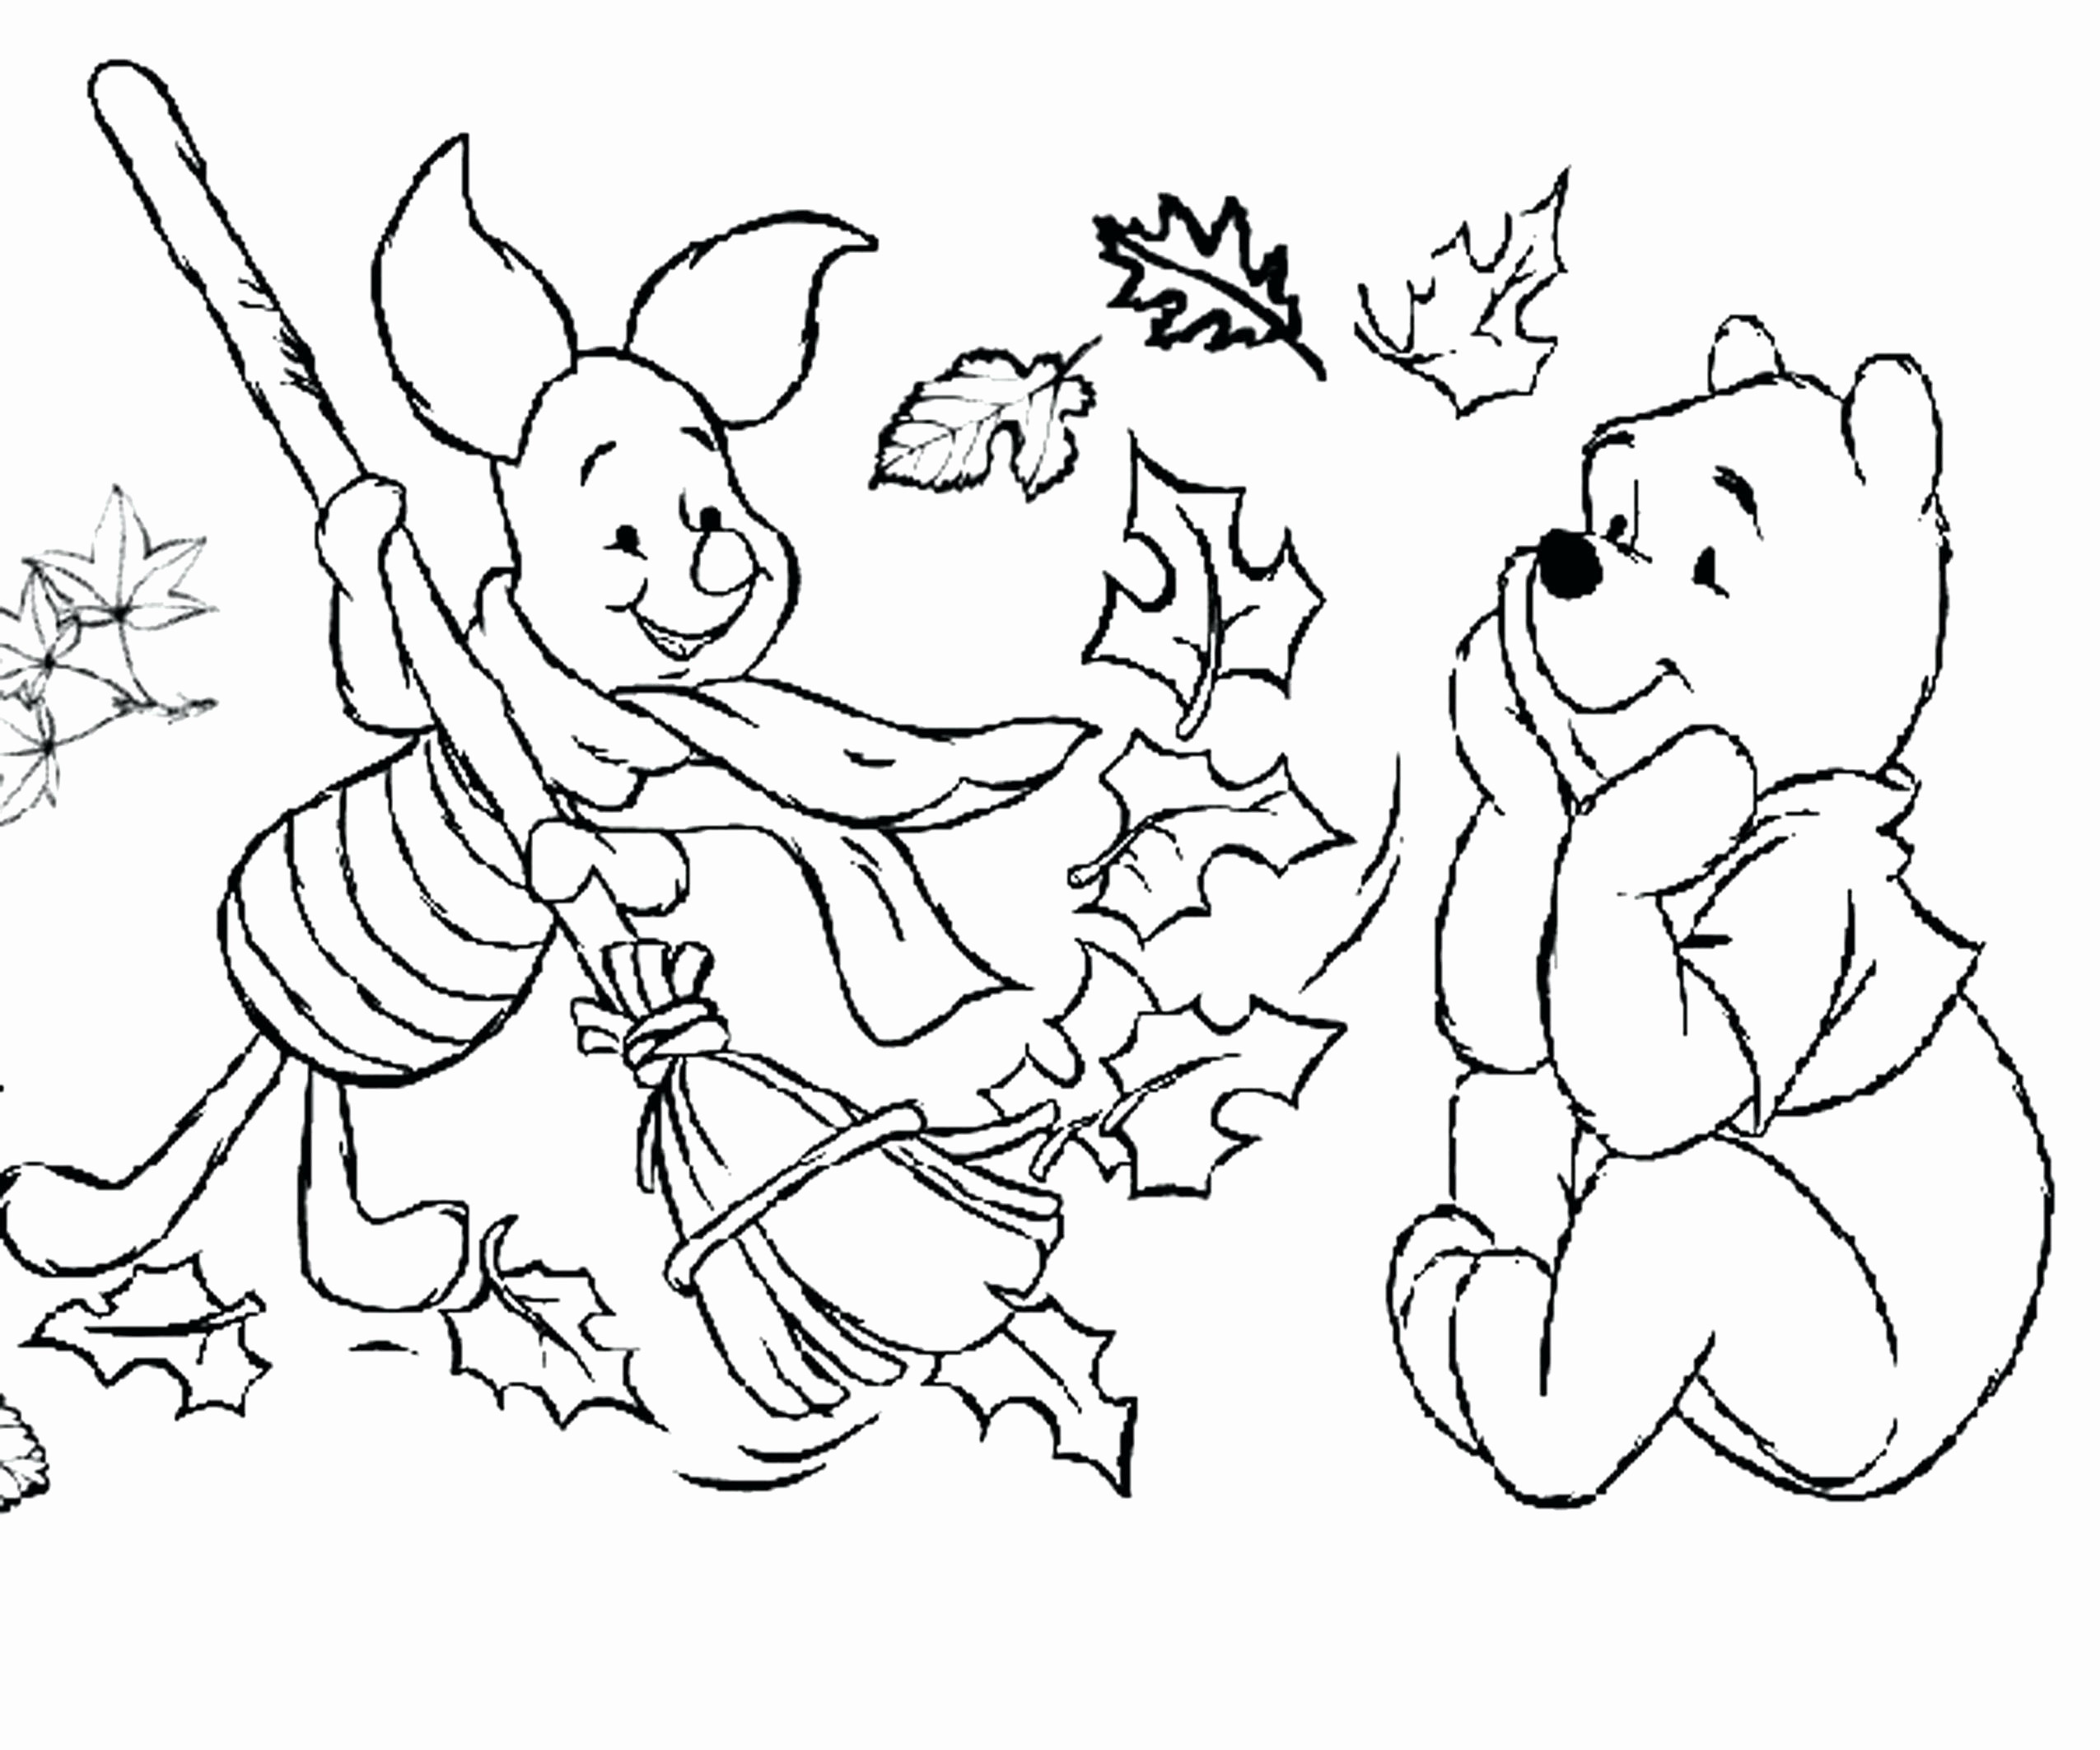 please coloring pages Download-Please Coloring Pages Batman Coloring Pages Games New Fall Coloring Pages 0d Page for Kids 20-o